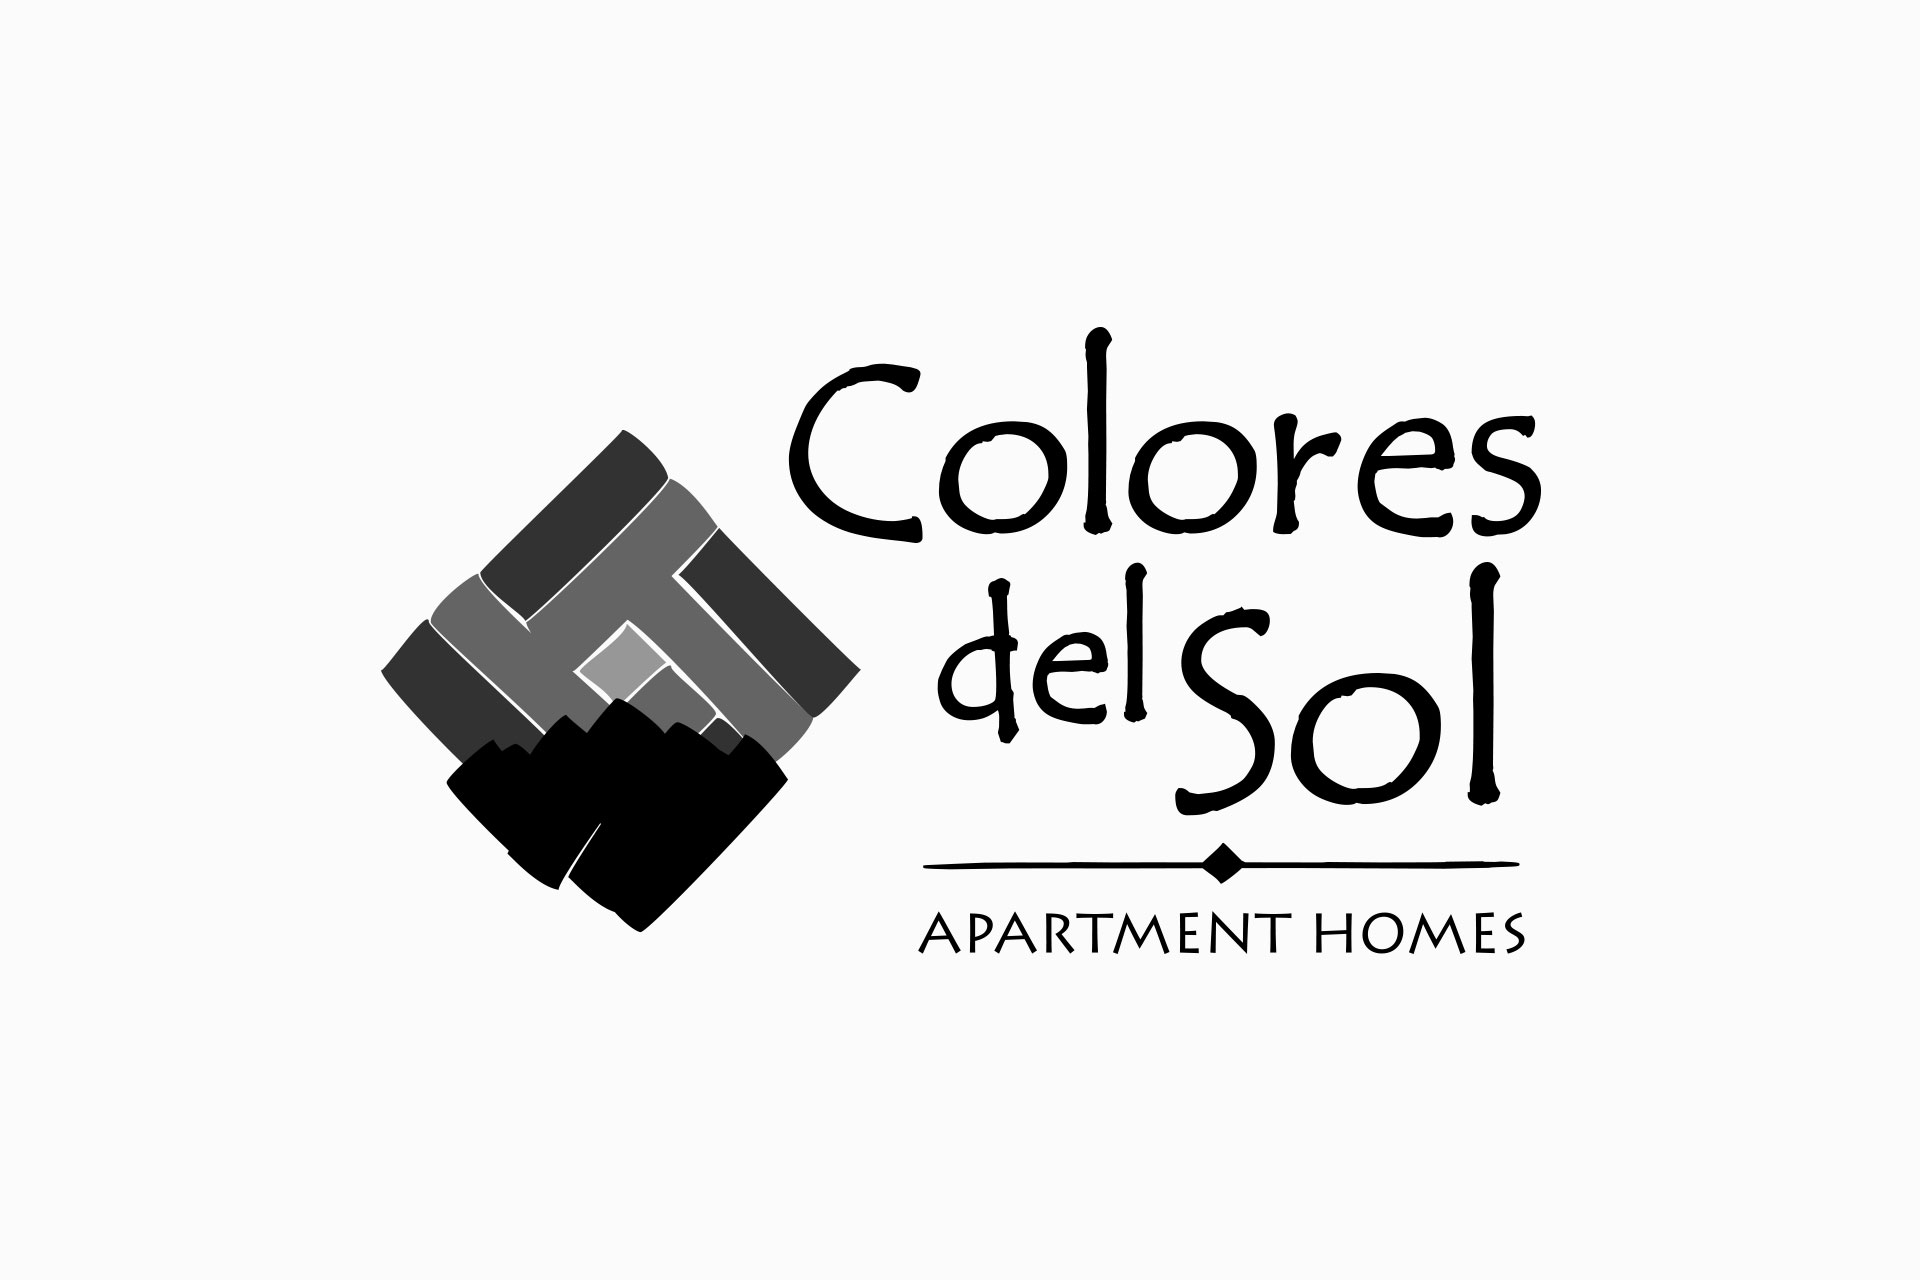 coloresdelsol logo